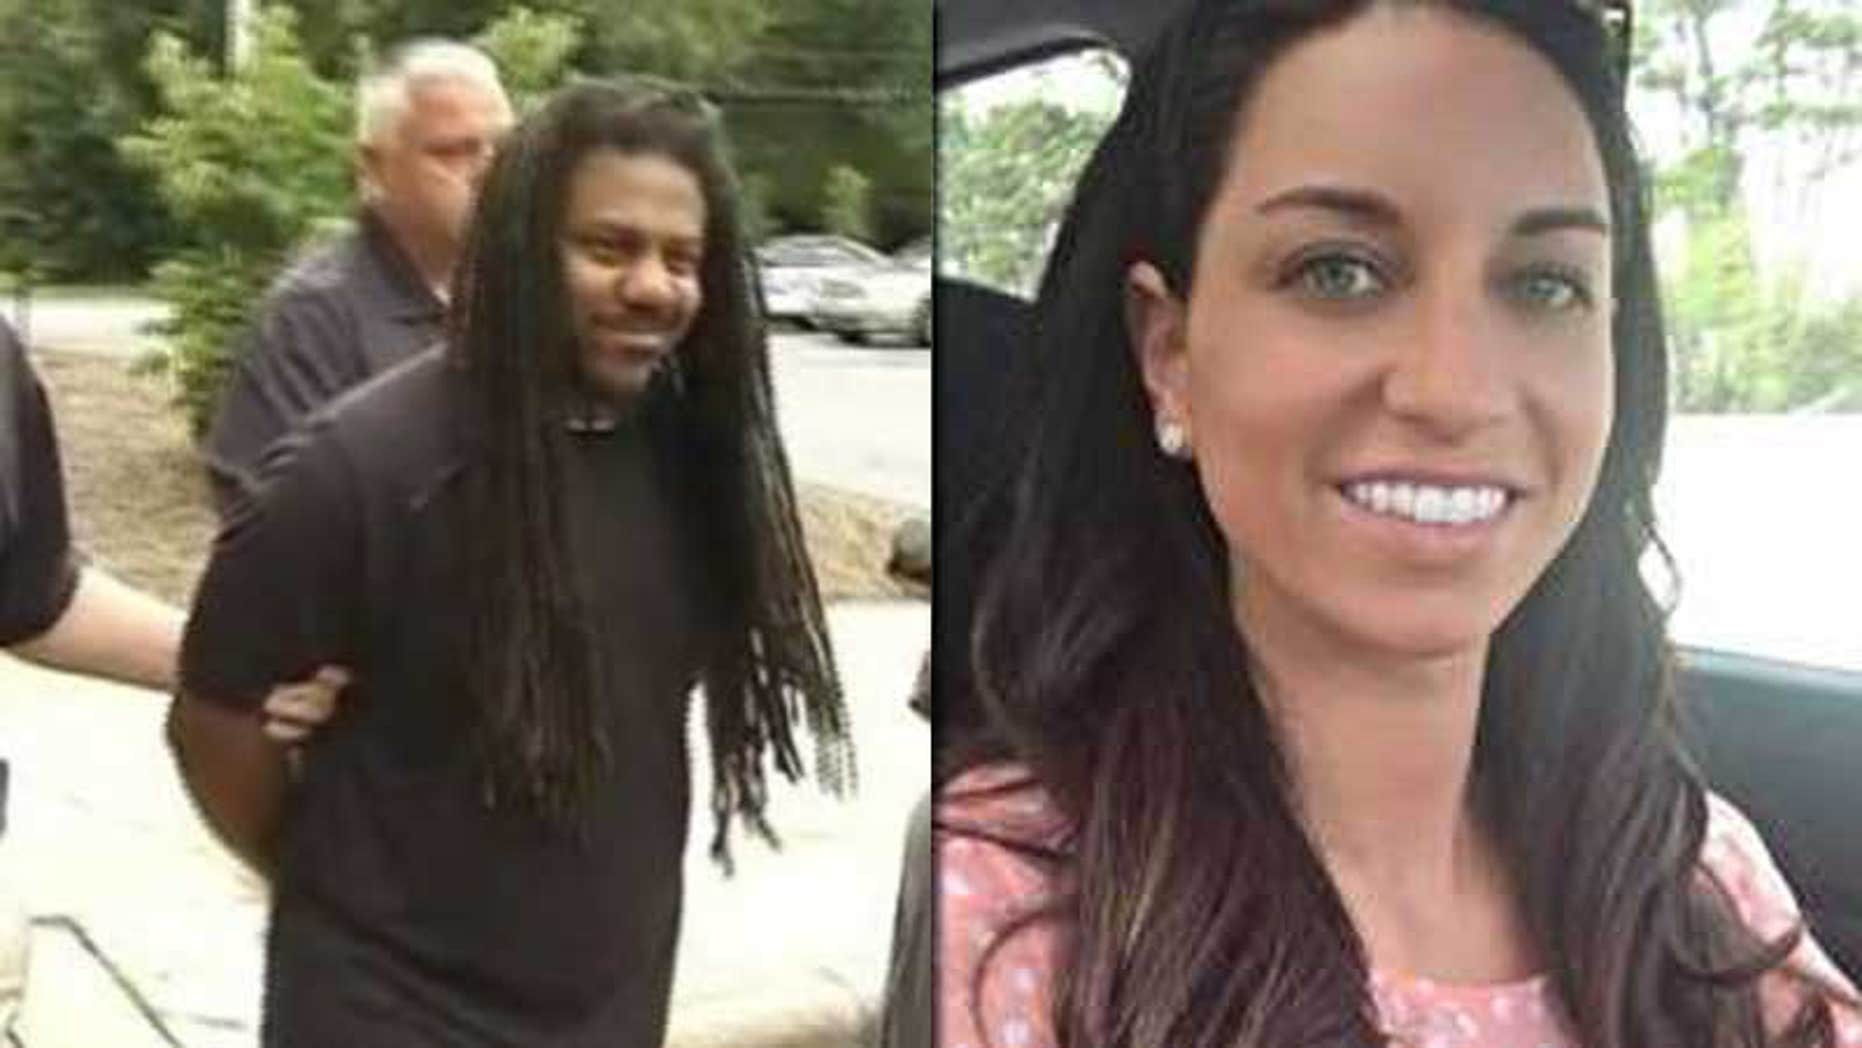 These images, provided by Fox affiliate WGHP, show Sharman Howard Odom, left, and Maggie Daniels, right.